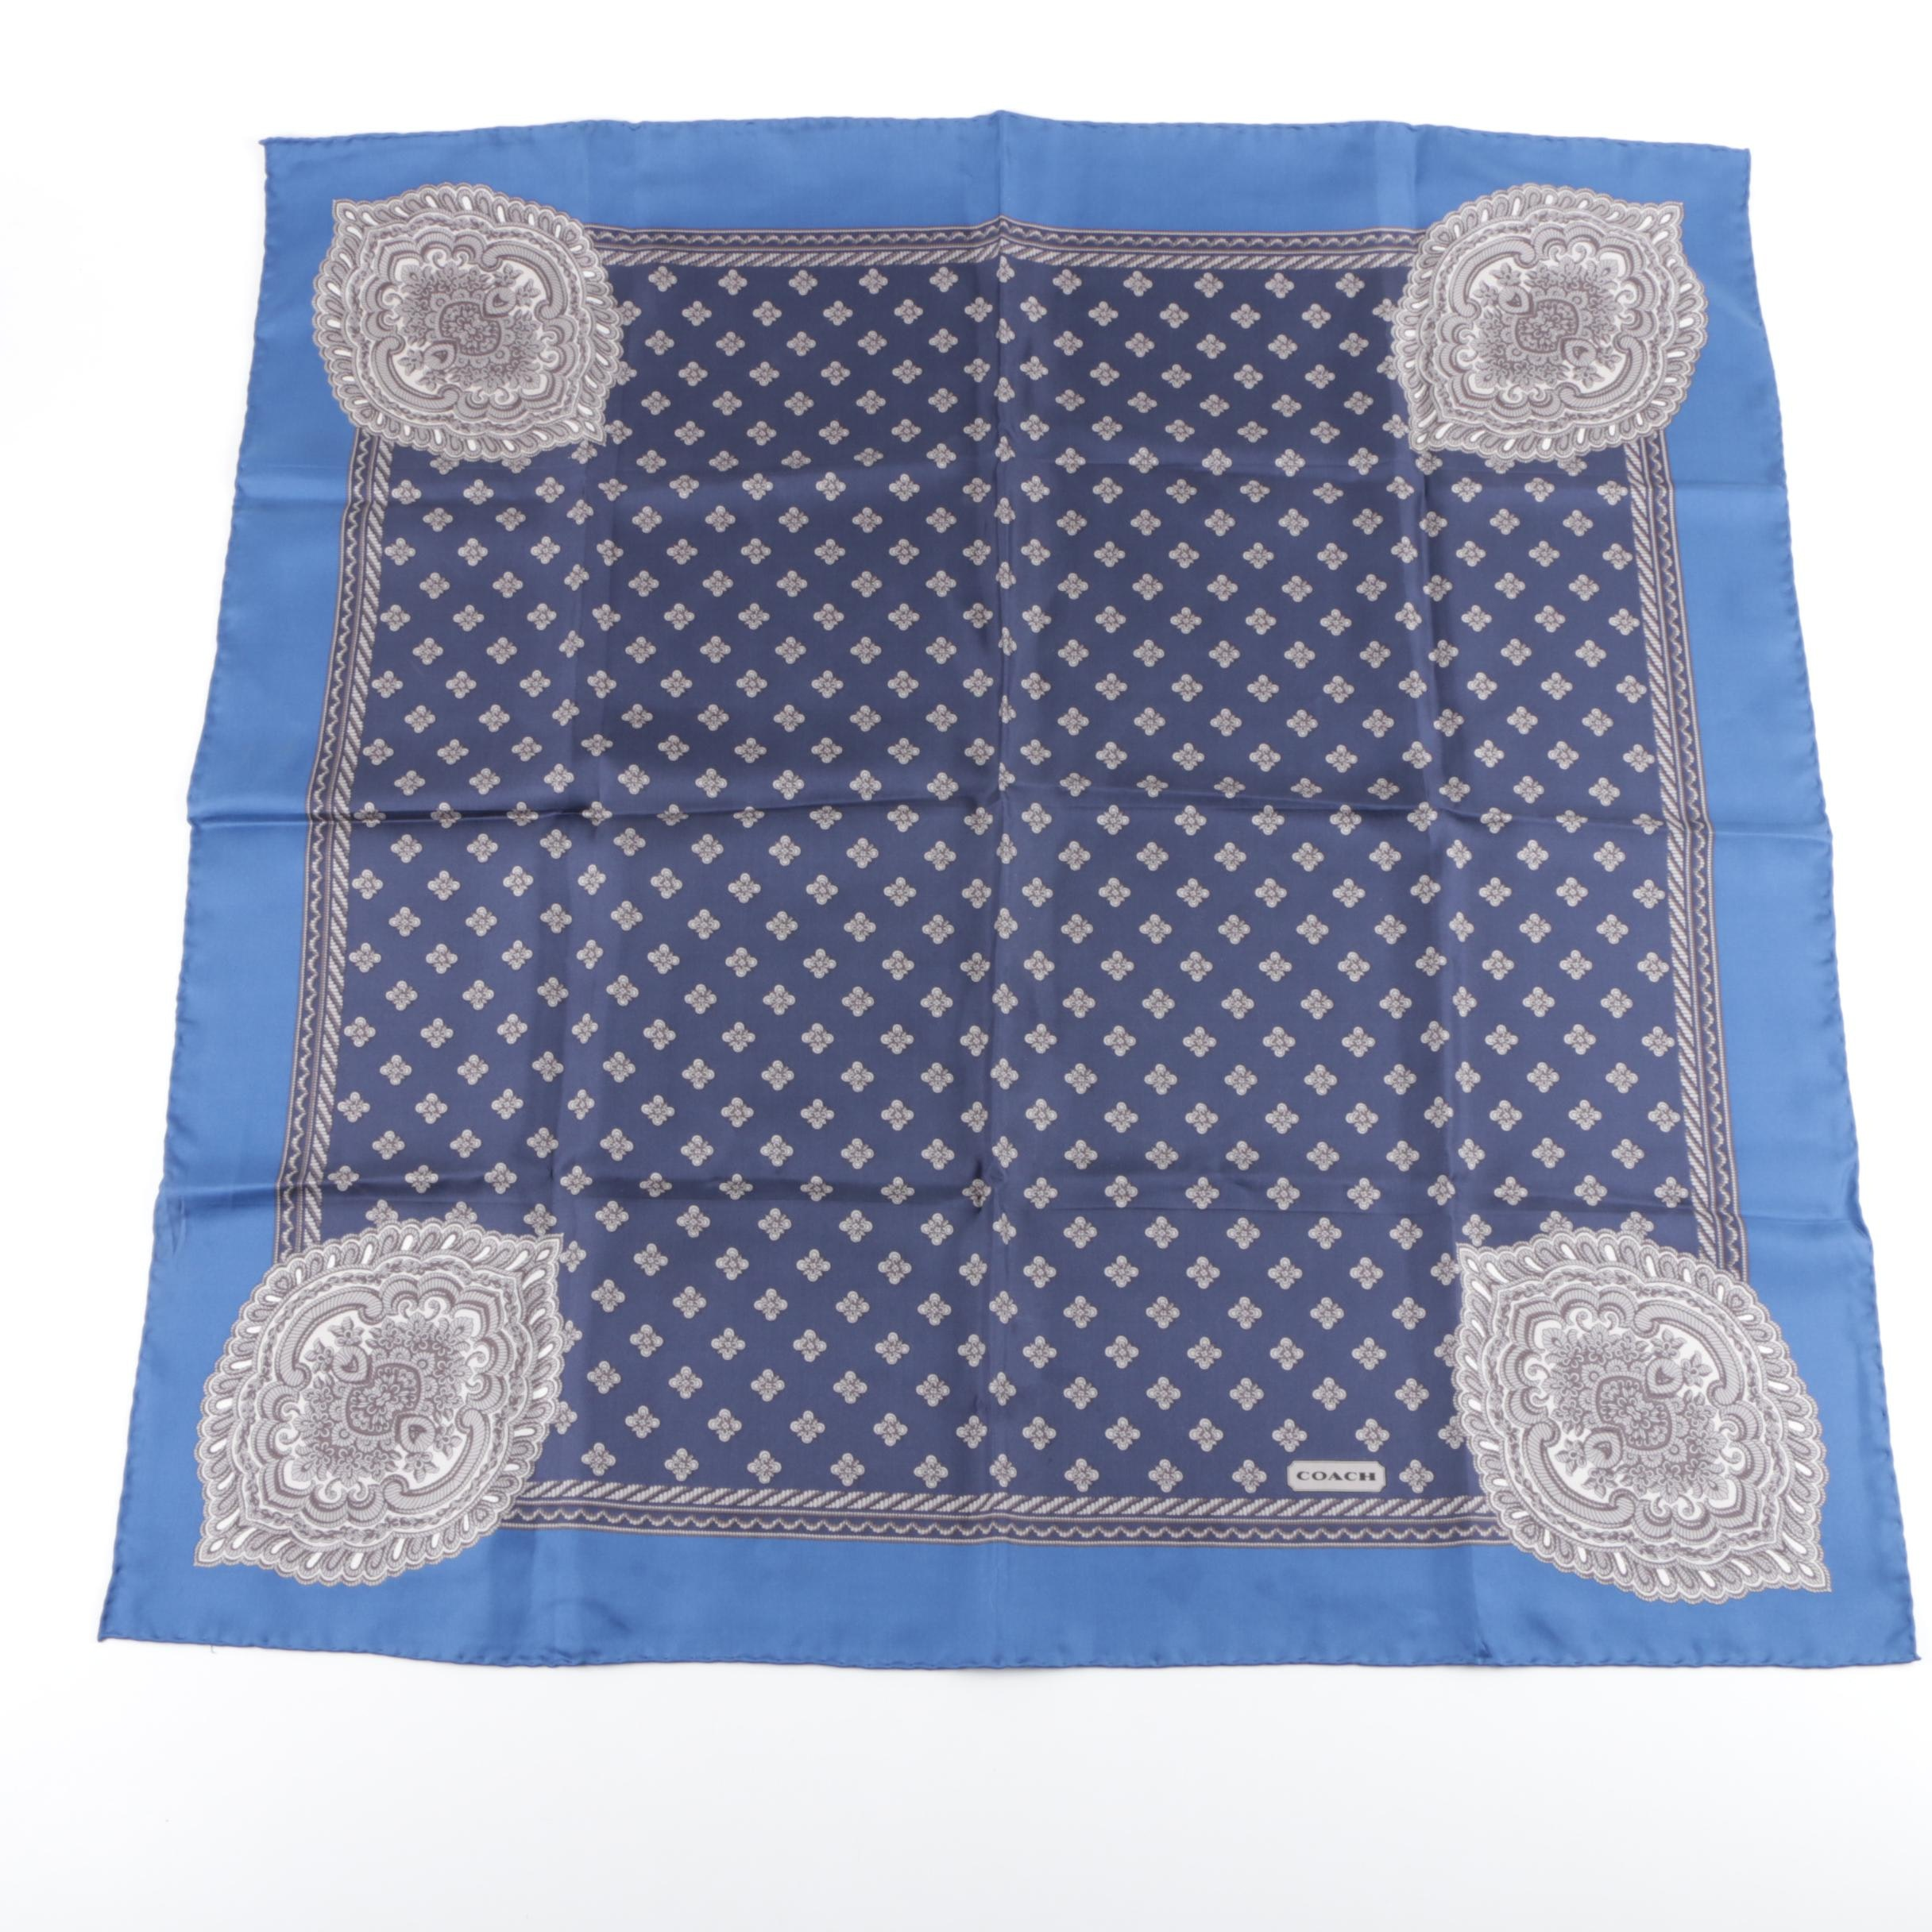 Coach Blue and Grey Foliate Print Silk Scarf with Hand-Rolled and Stitched Hem